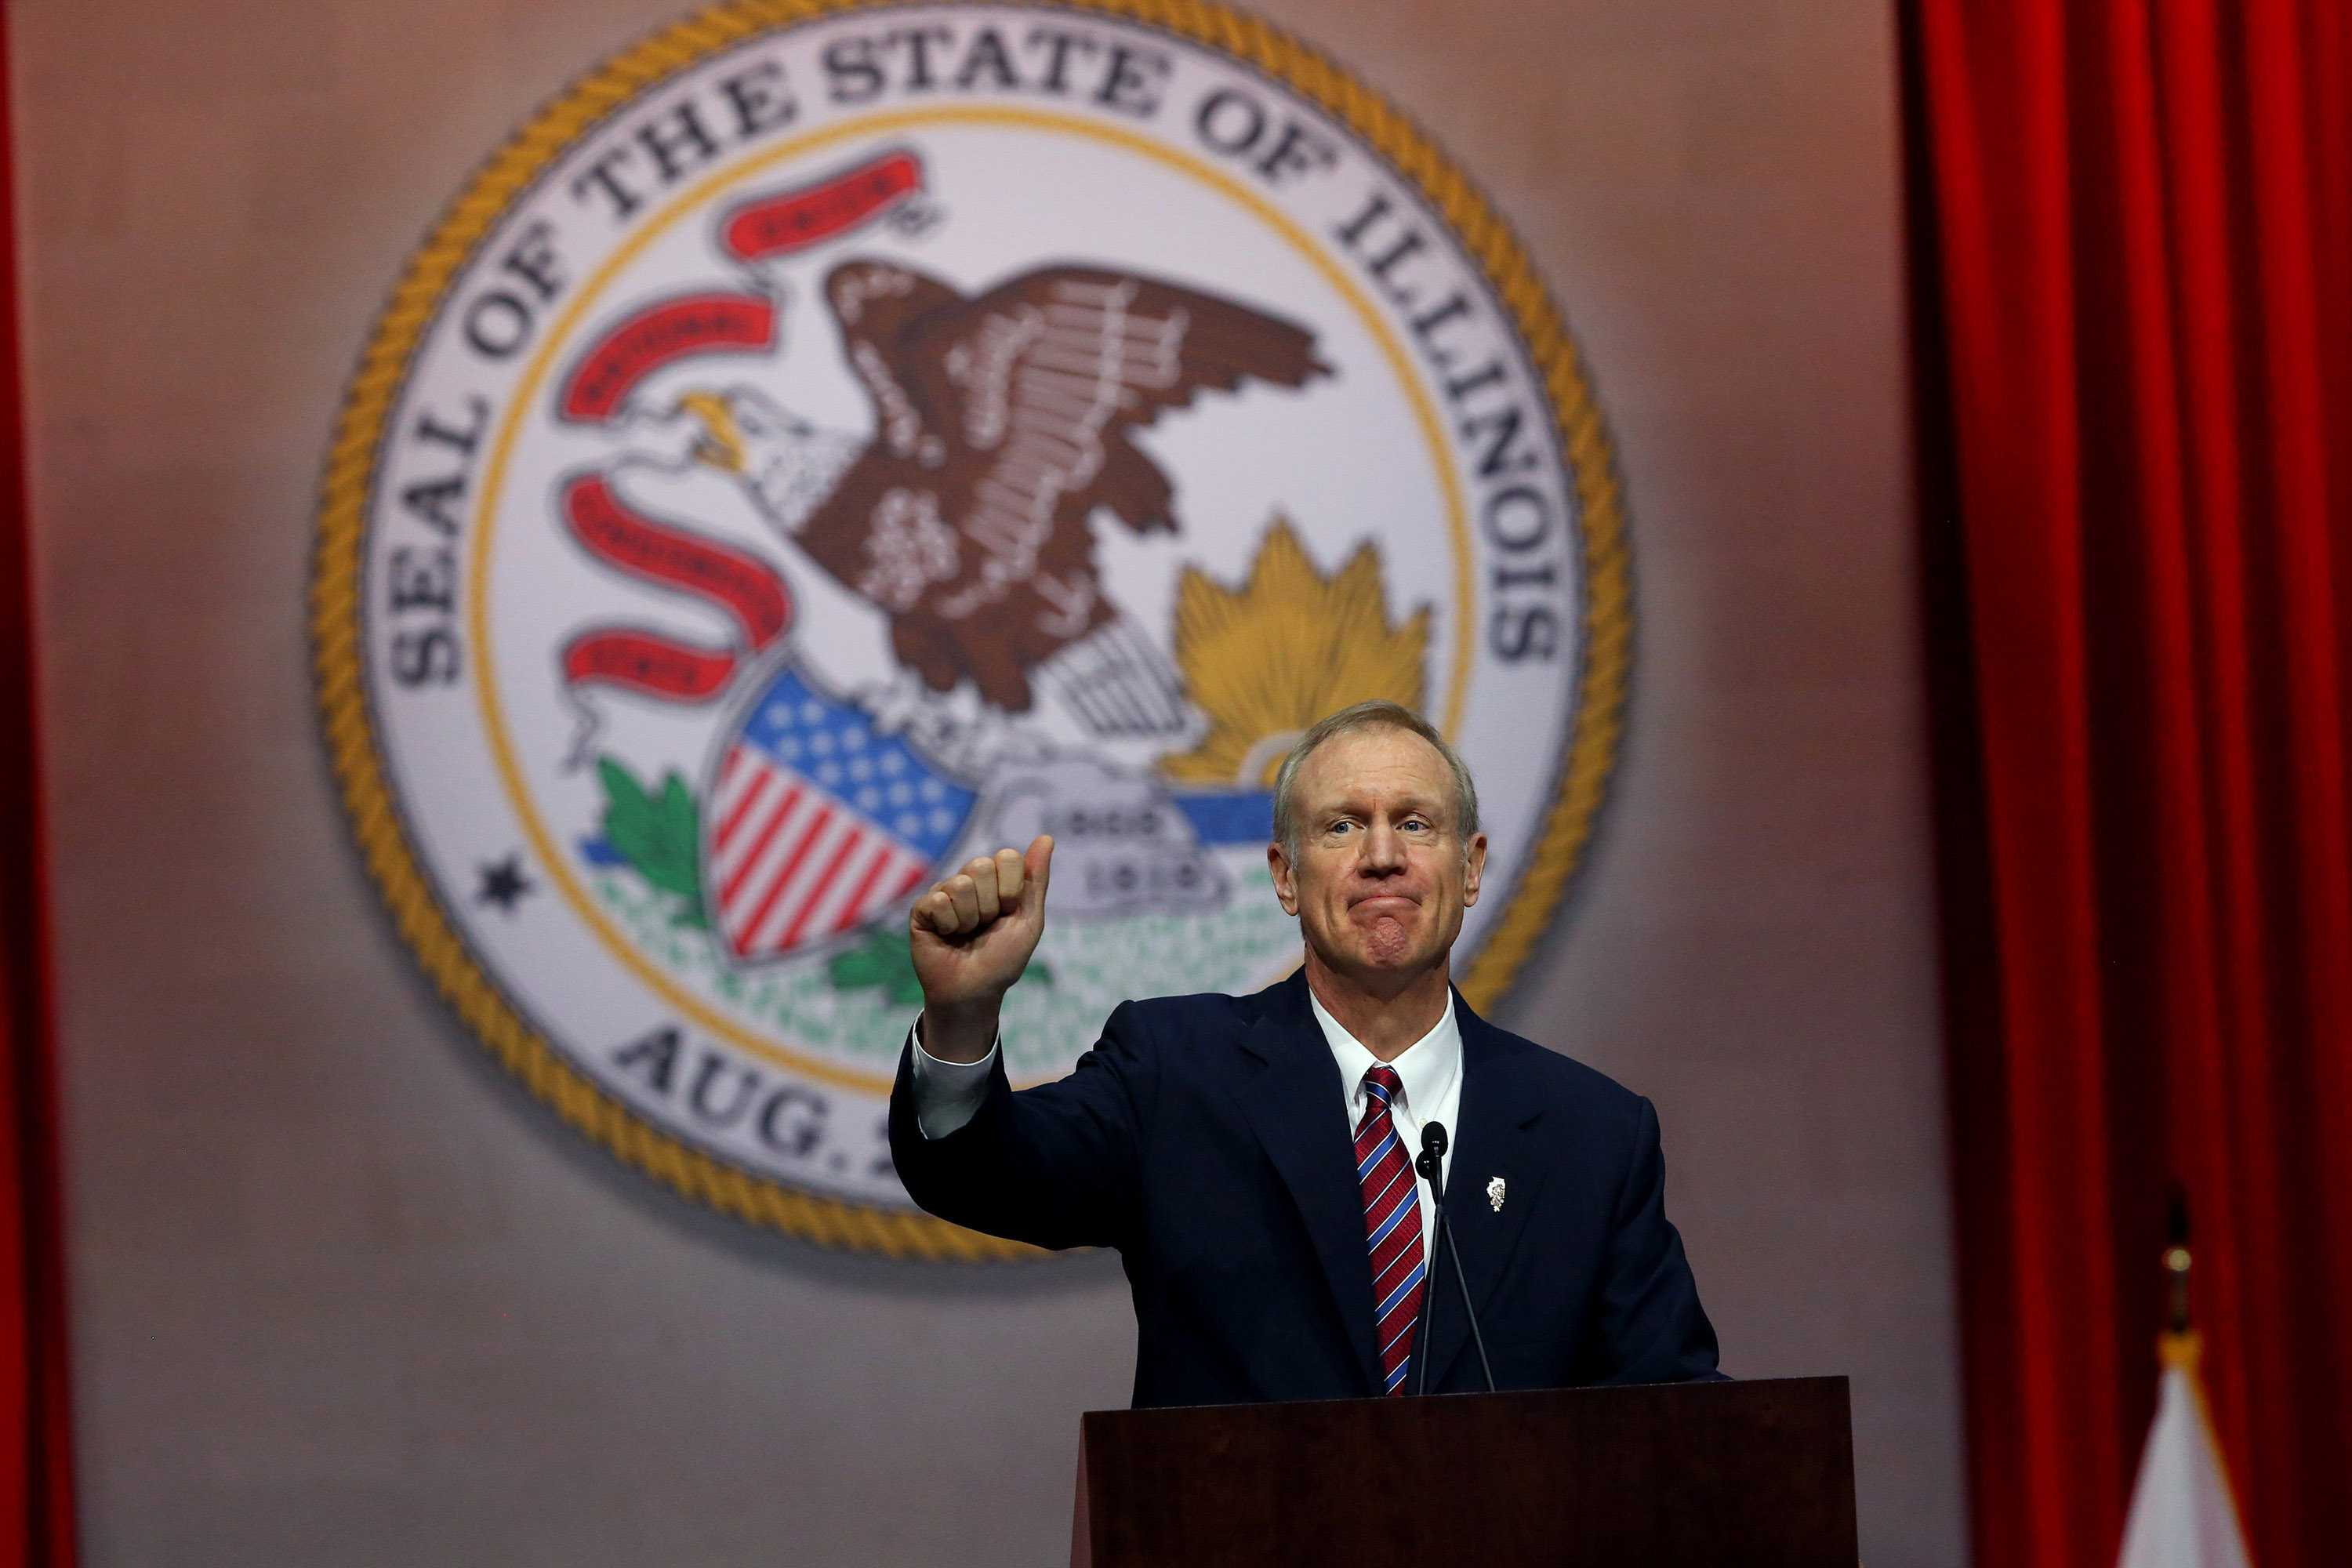 Gov. Bruce Rauner gives a thumbs up after giving his first speech as governor on Monday Jan. 12, 2015 at the Prairie Capital Convention Center in Springfield, Ill.